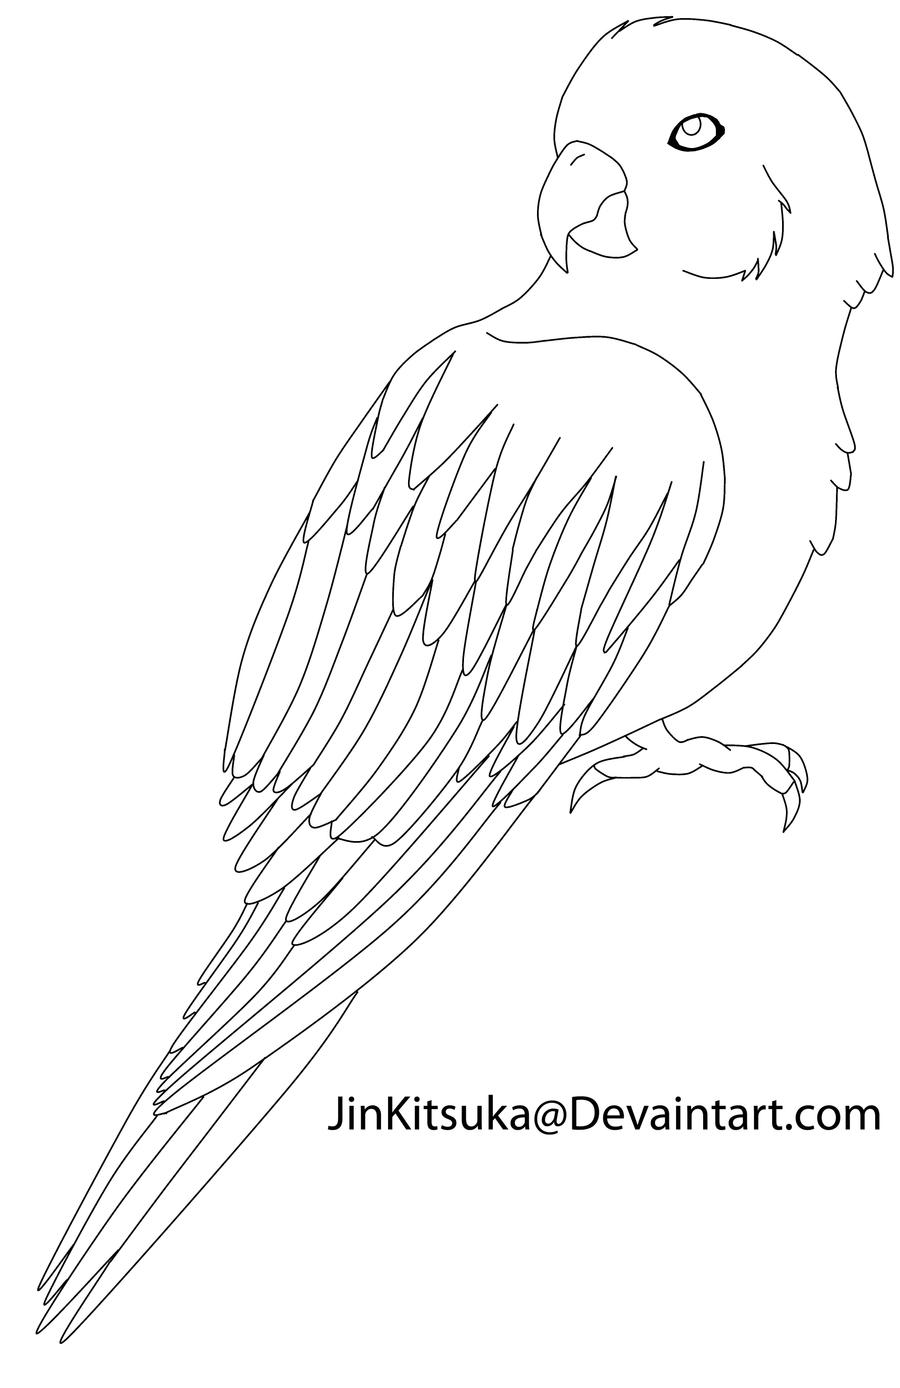 Quail Line Art : Free bird line art by jinkitsuka on deviantart